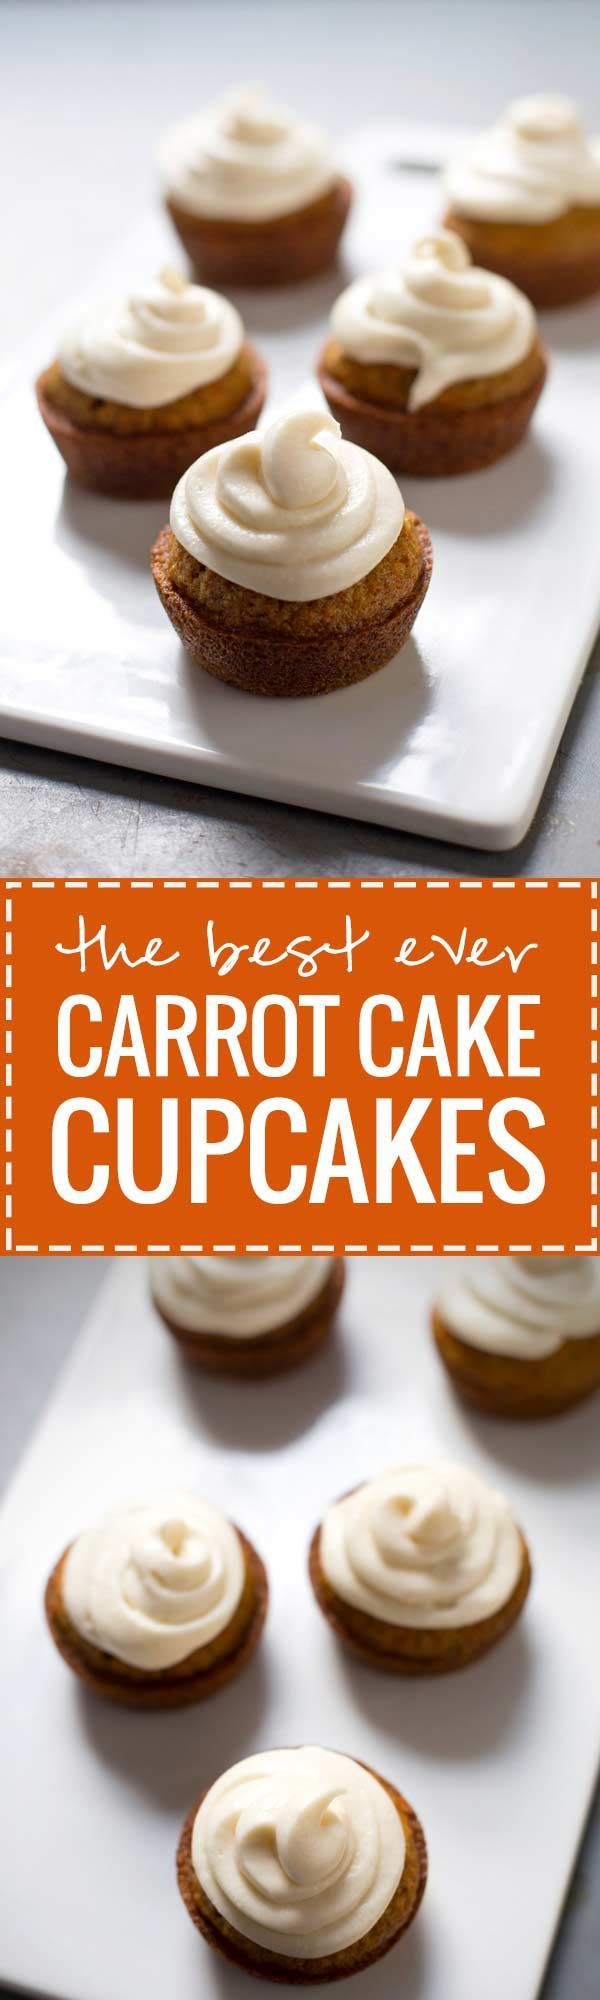 The Best Carrot Cake Cupcakes with Cream Cheese Frosting - lightly spiced, perfectly moist, and oh that cream cheese frosting.